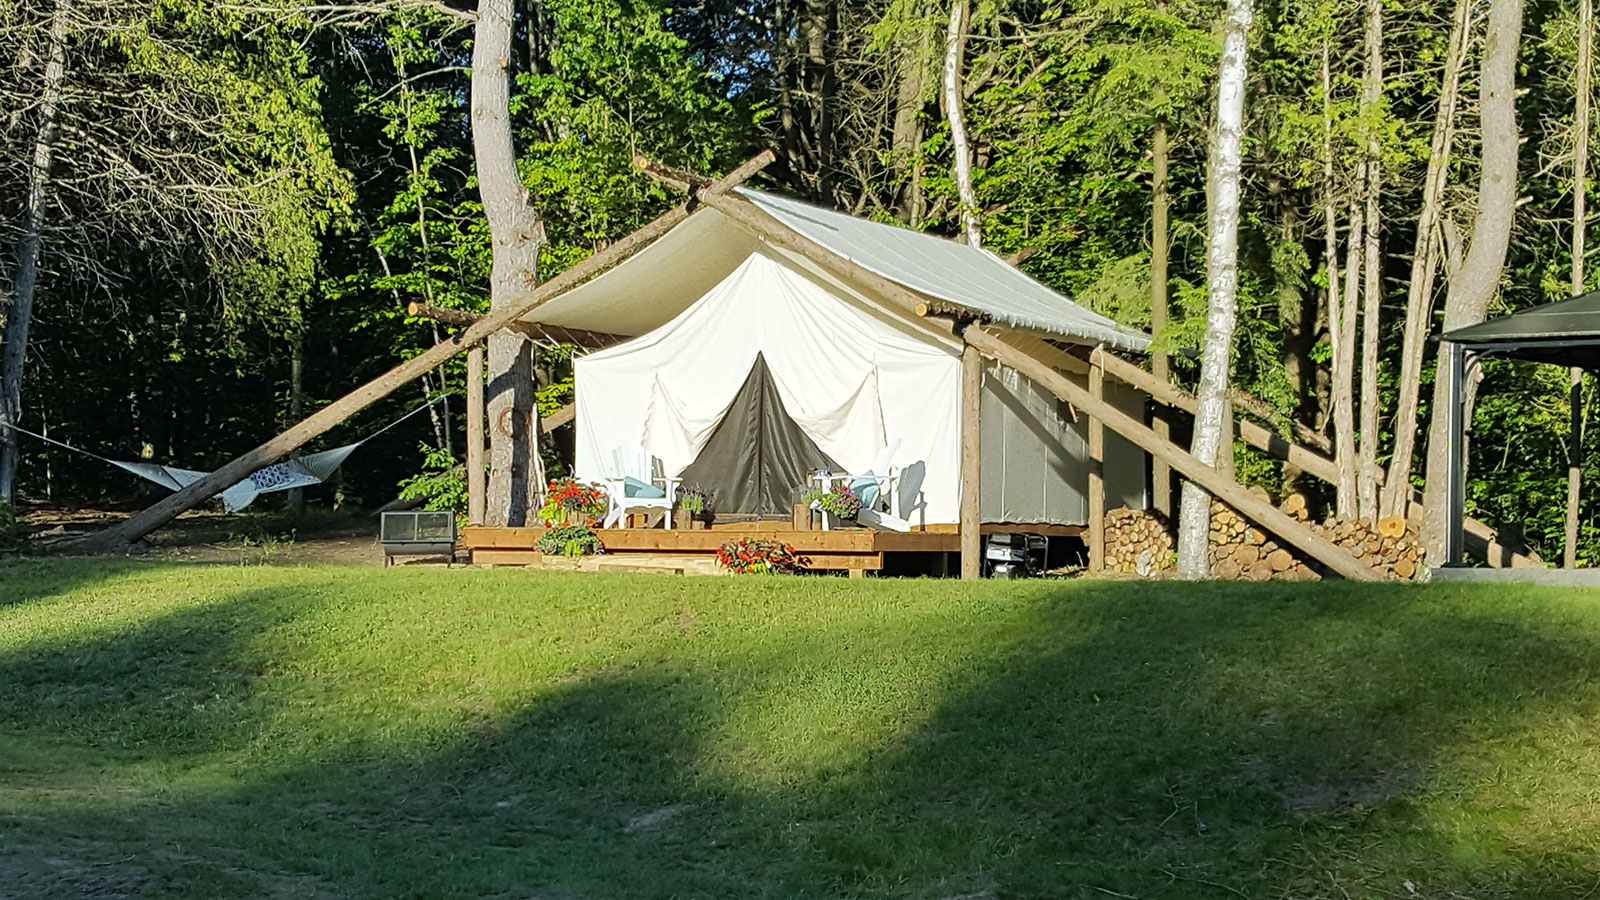 Whispering Springs Wilderness Retreat & New Wilderness Resort Features Tenting in Luxury Canvas Tents ...